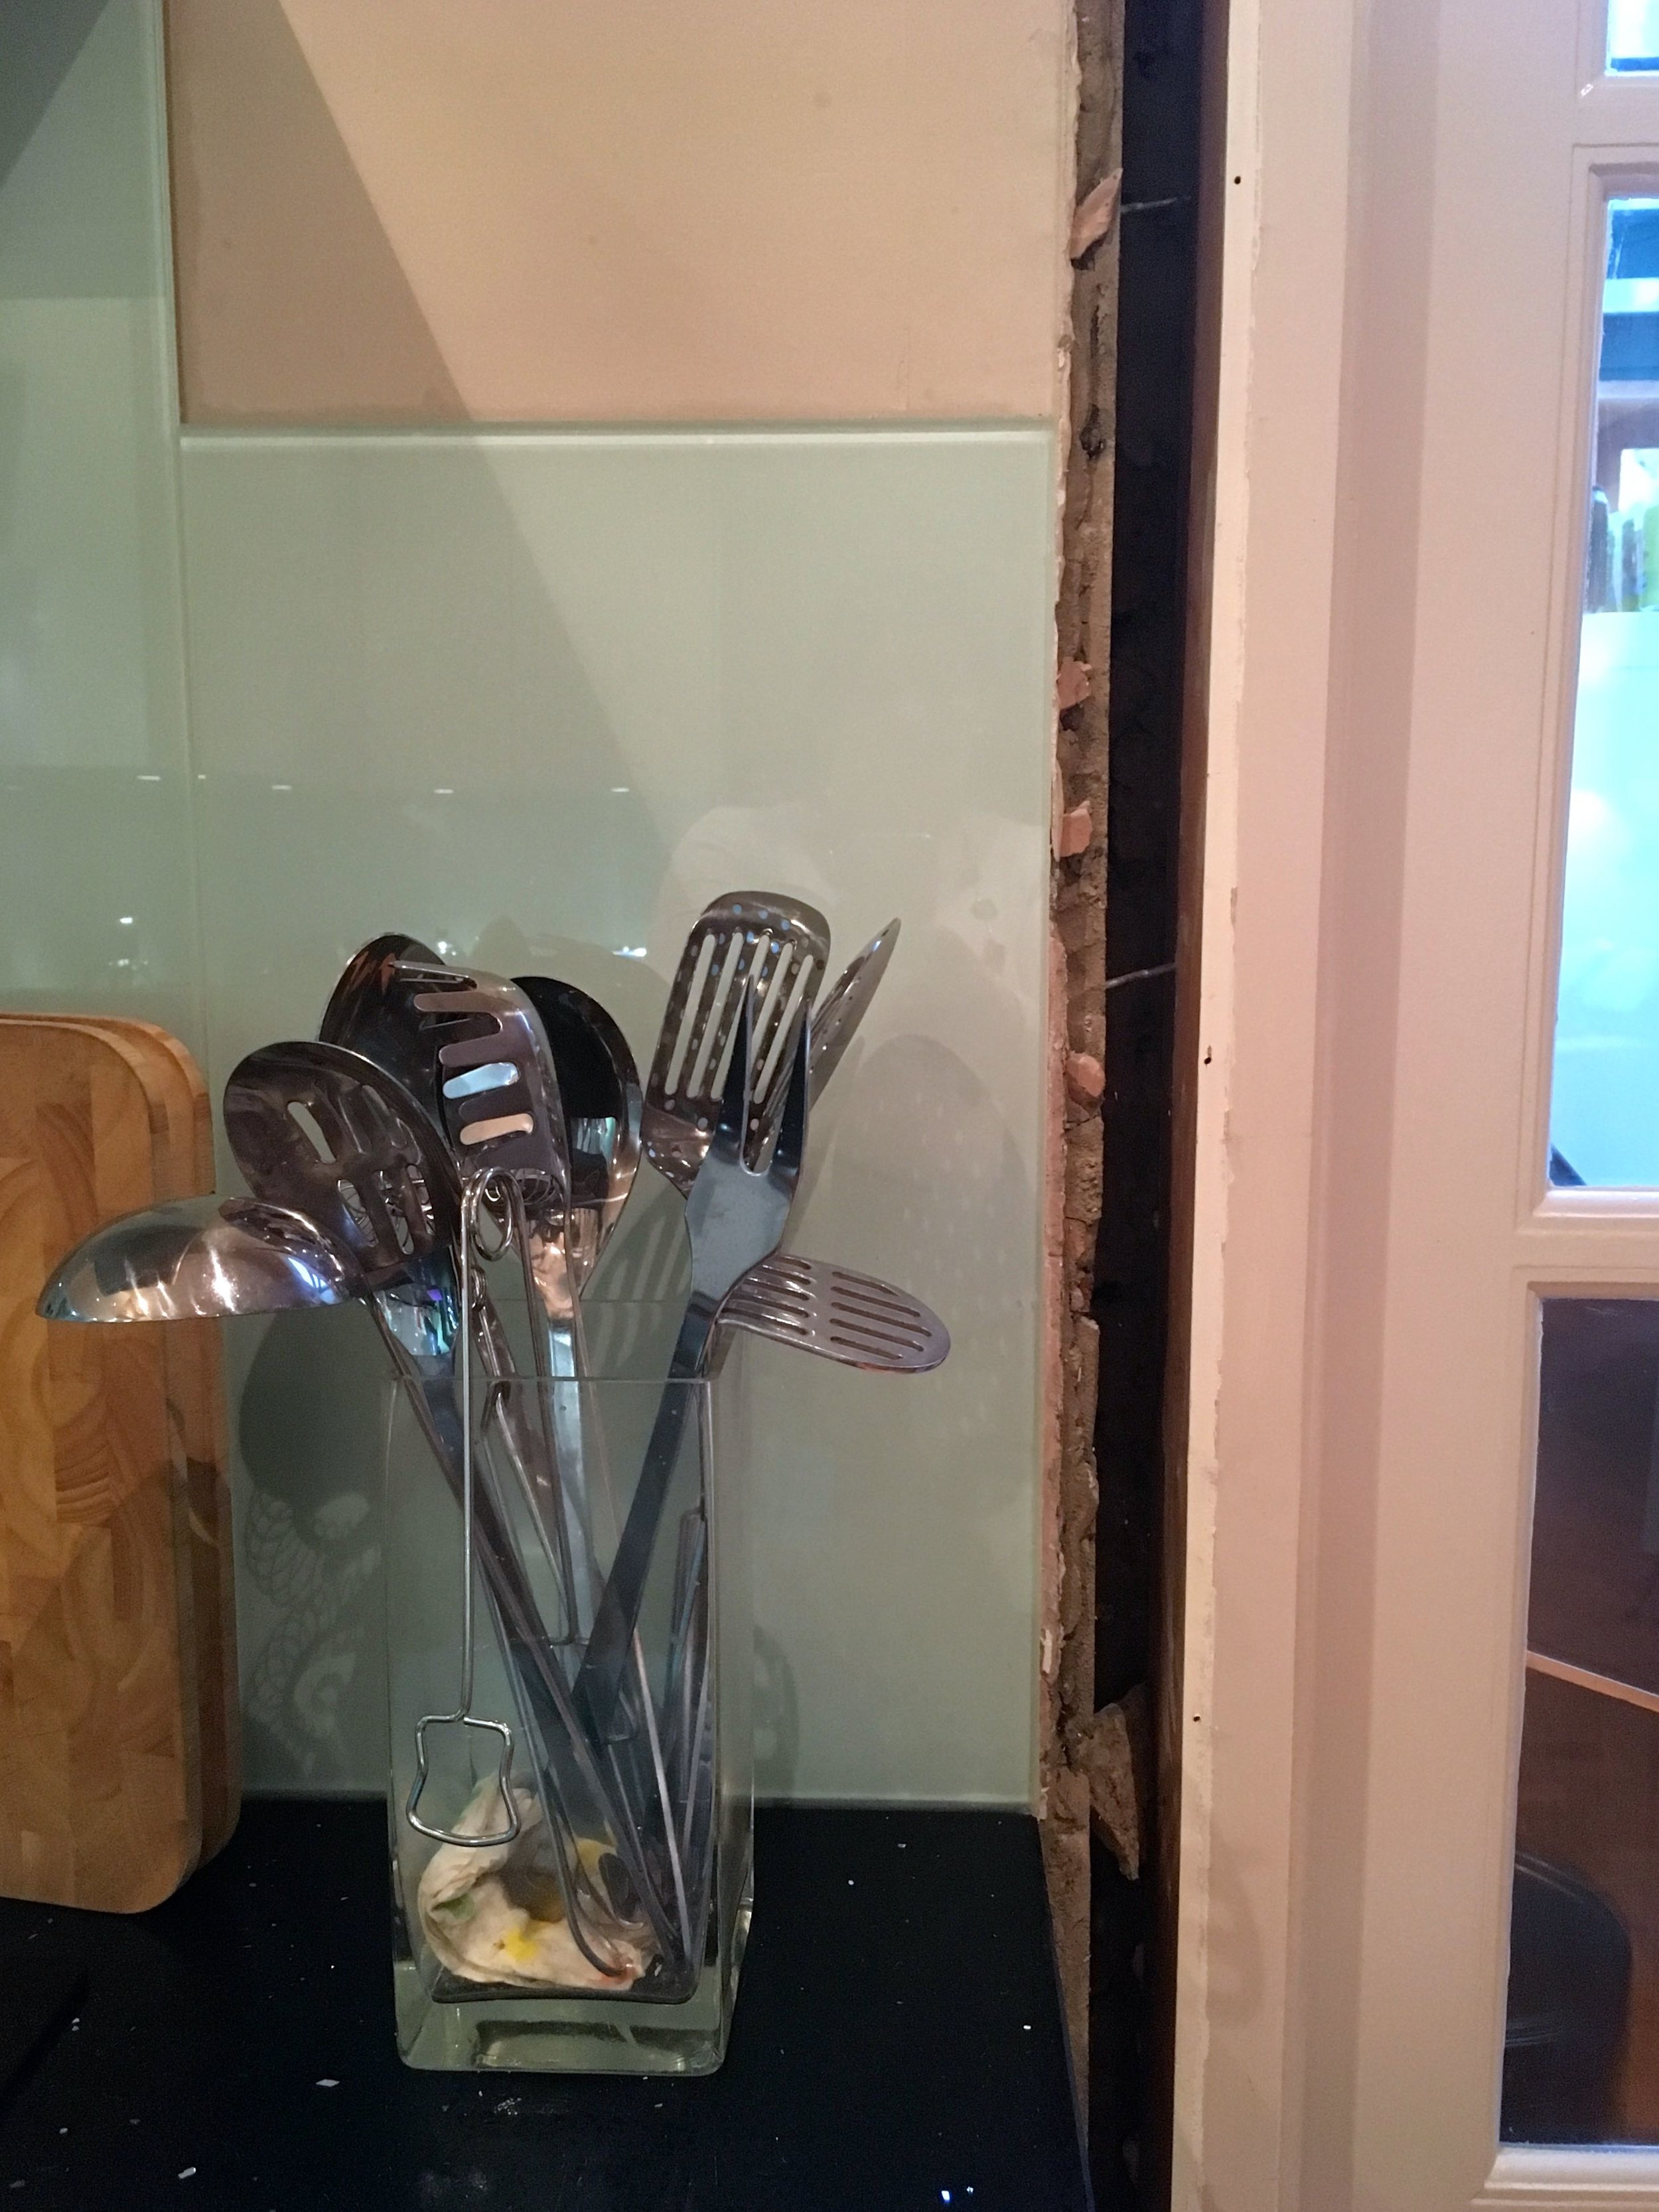 The architrave's off and the glass splashback unharmed